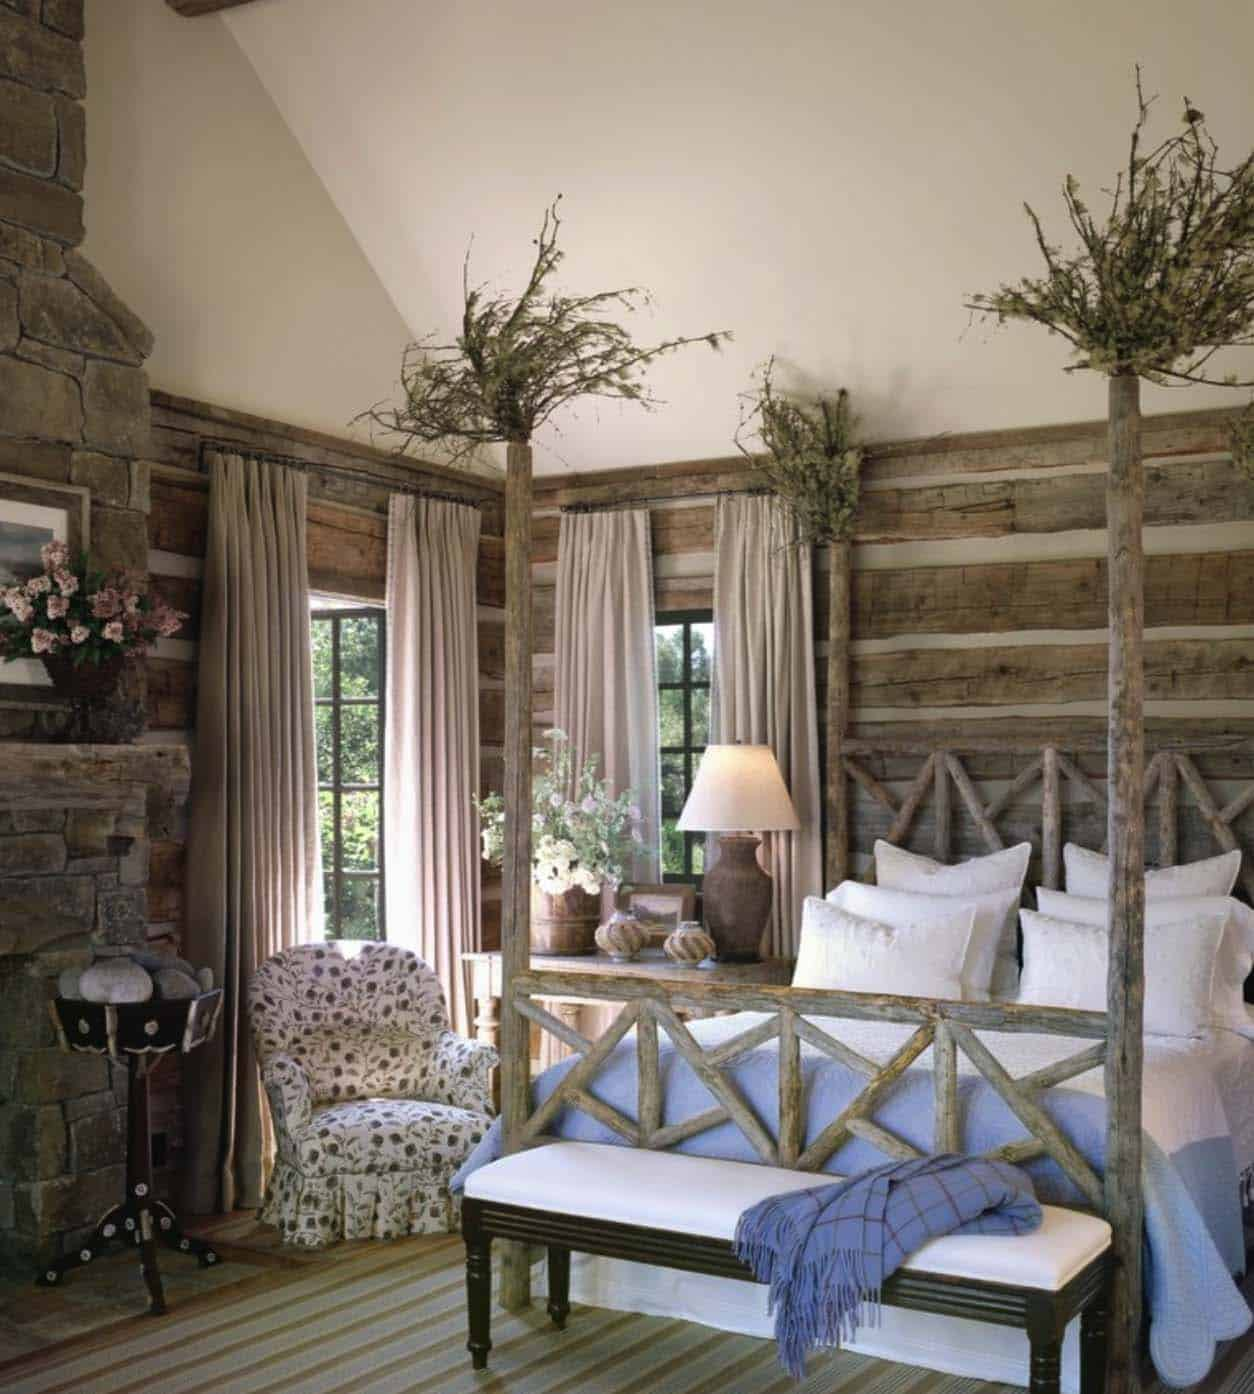 log-cabin-style-bedrooms-08-1-kindesign